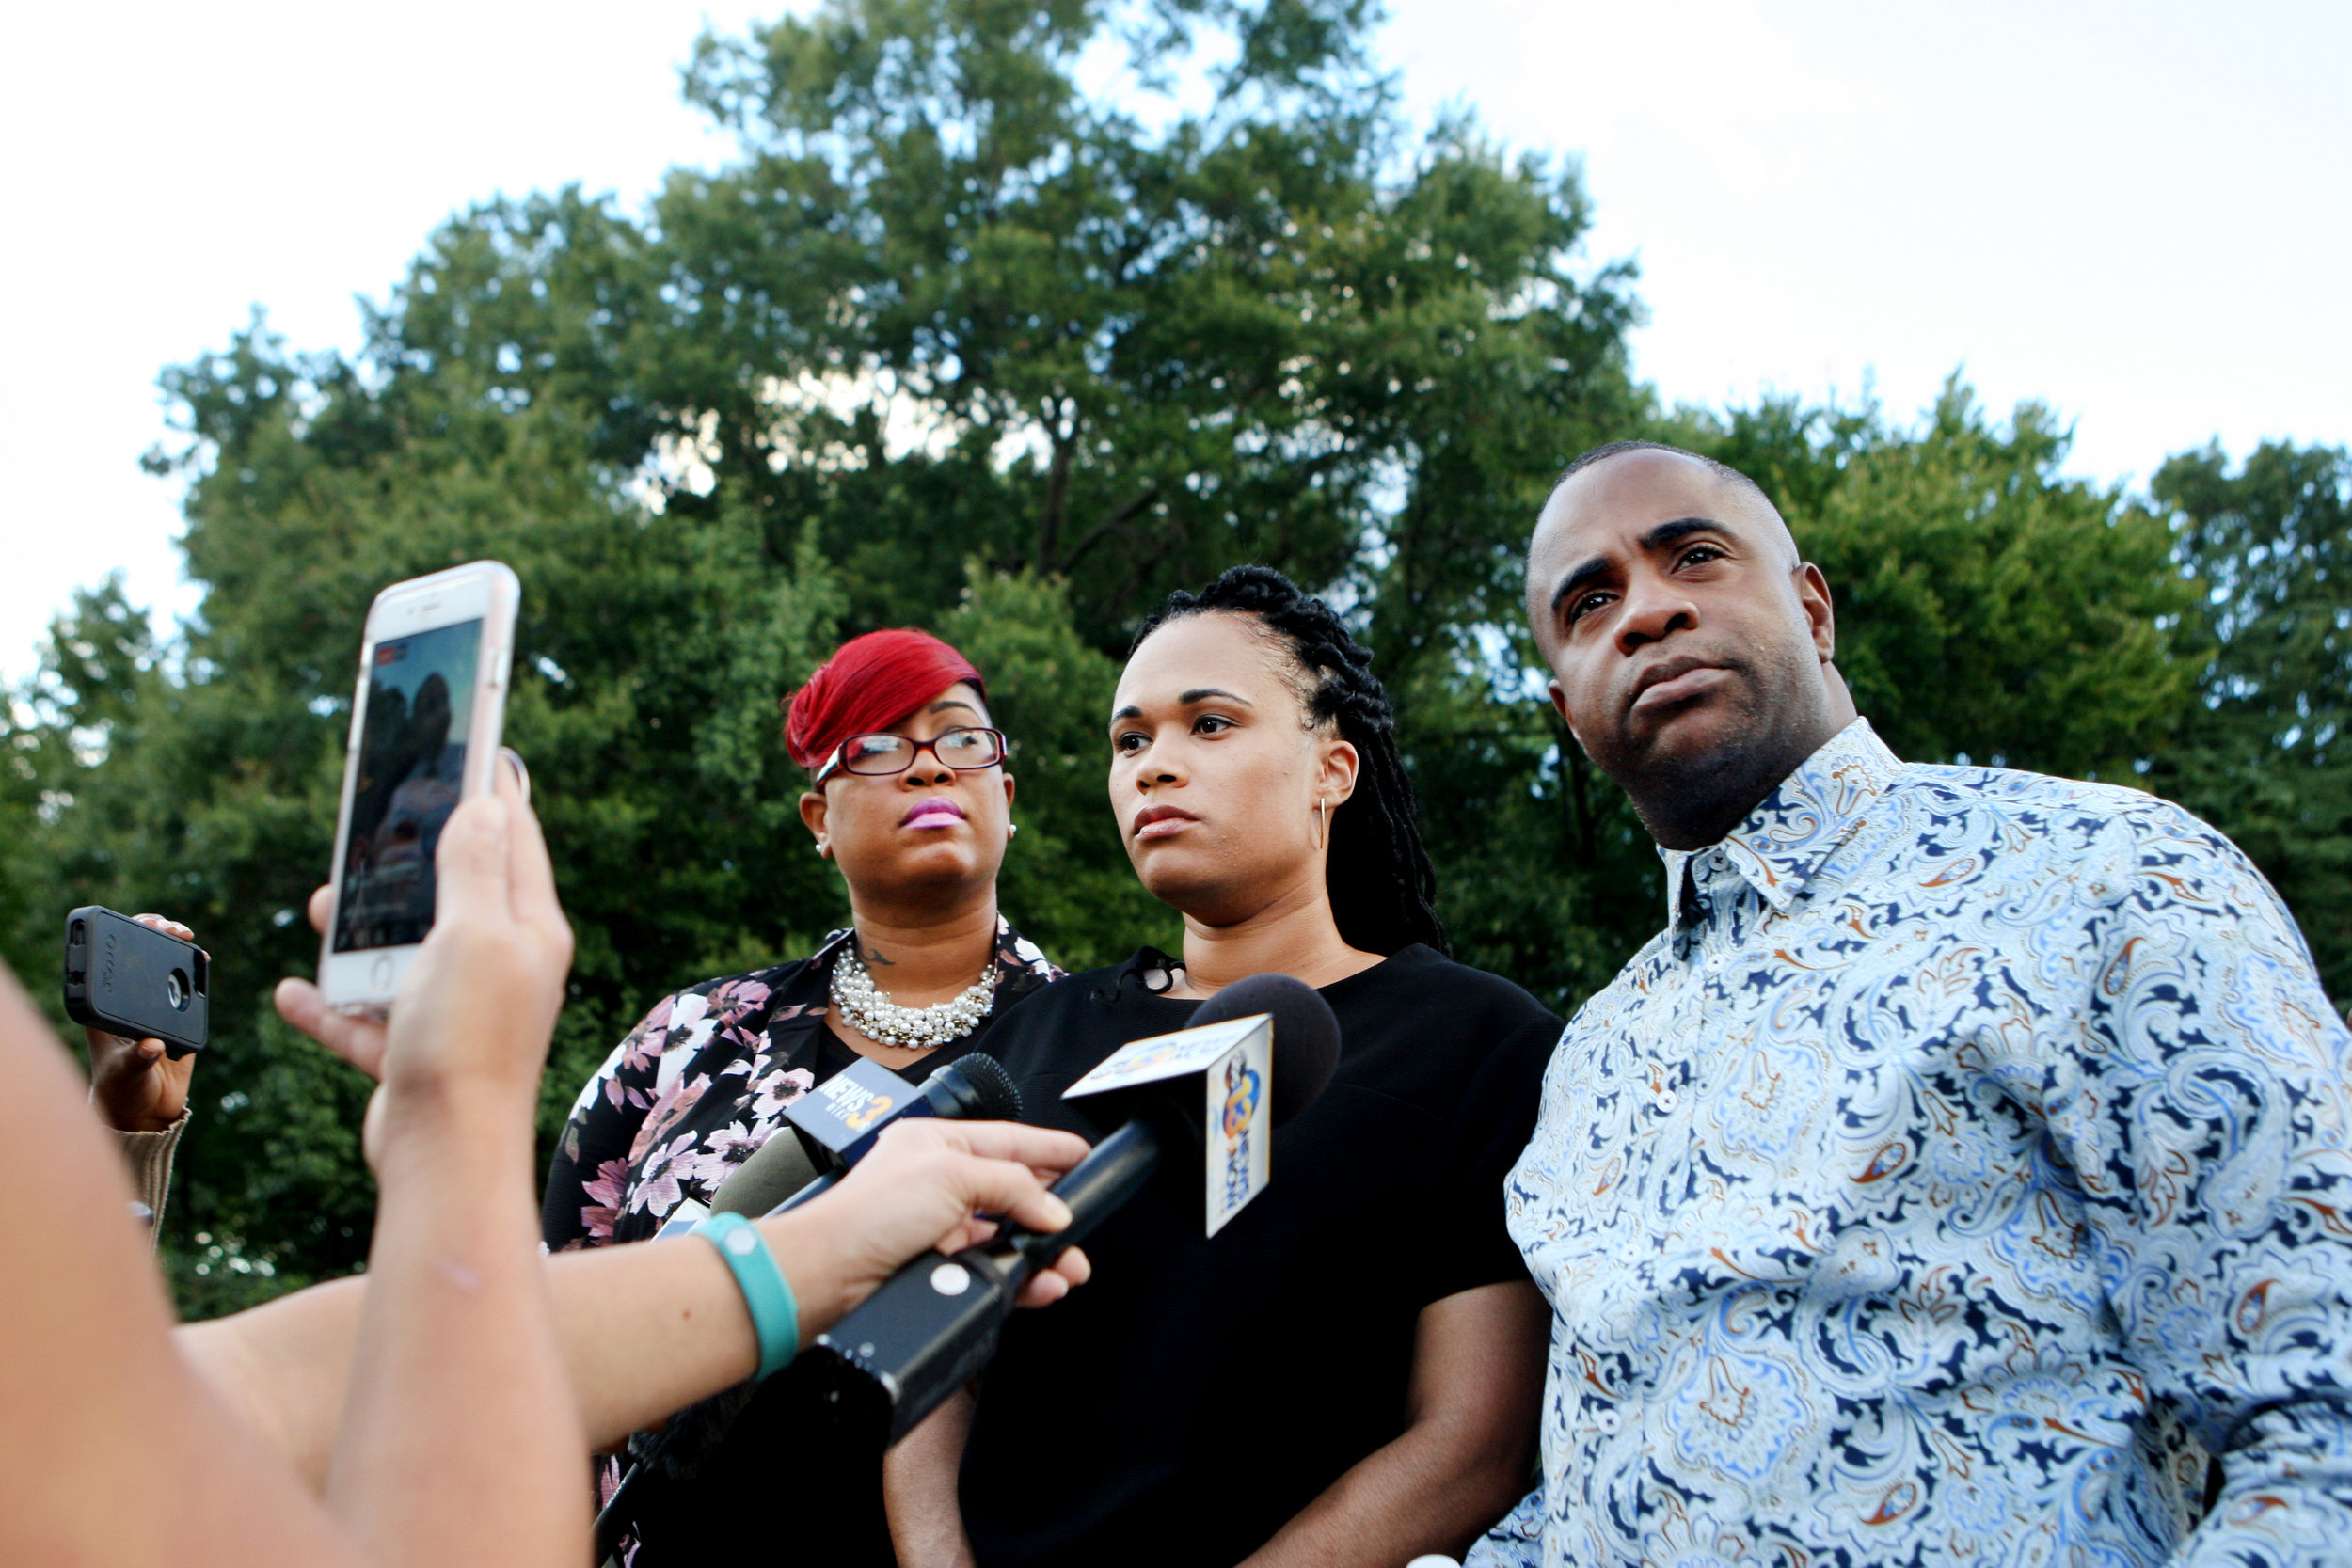 The family of Ashanti Billie, including family spokeswoman Kimberly Wimbish, left, address the media in Virginia Beach.